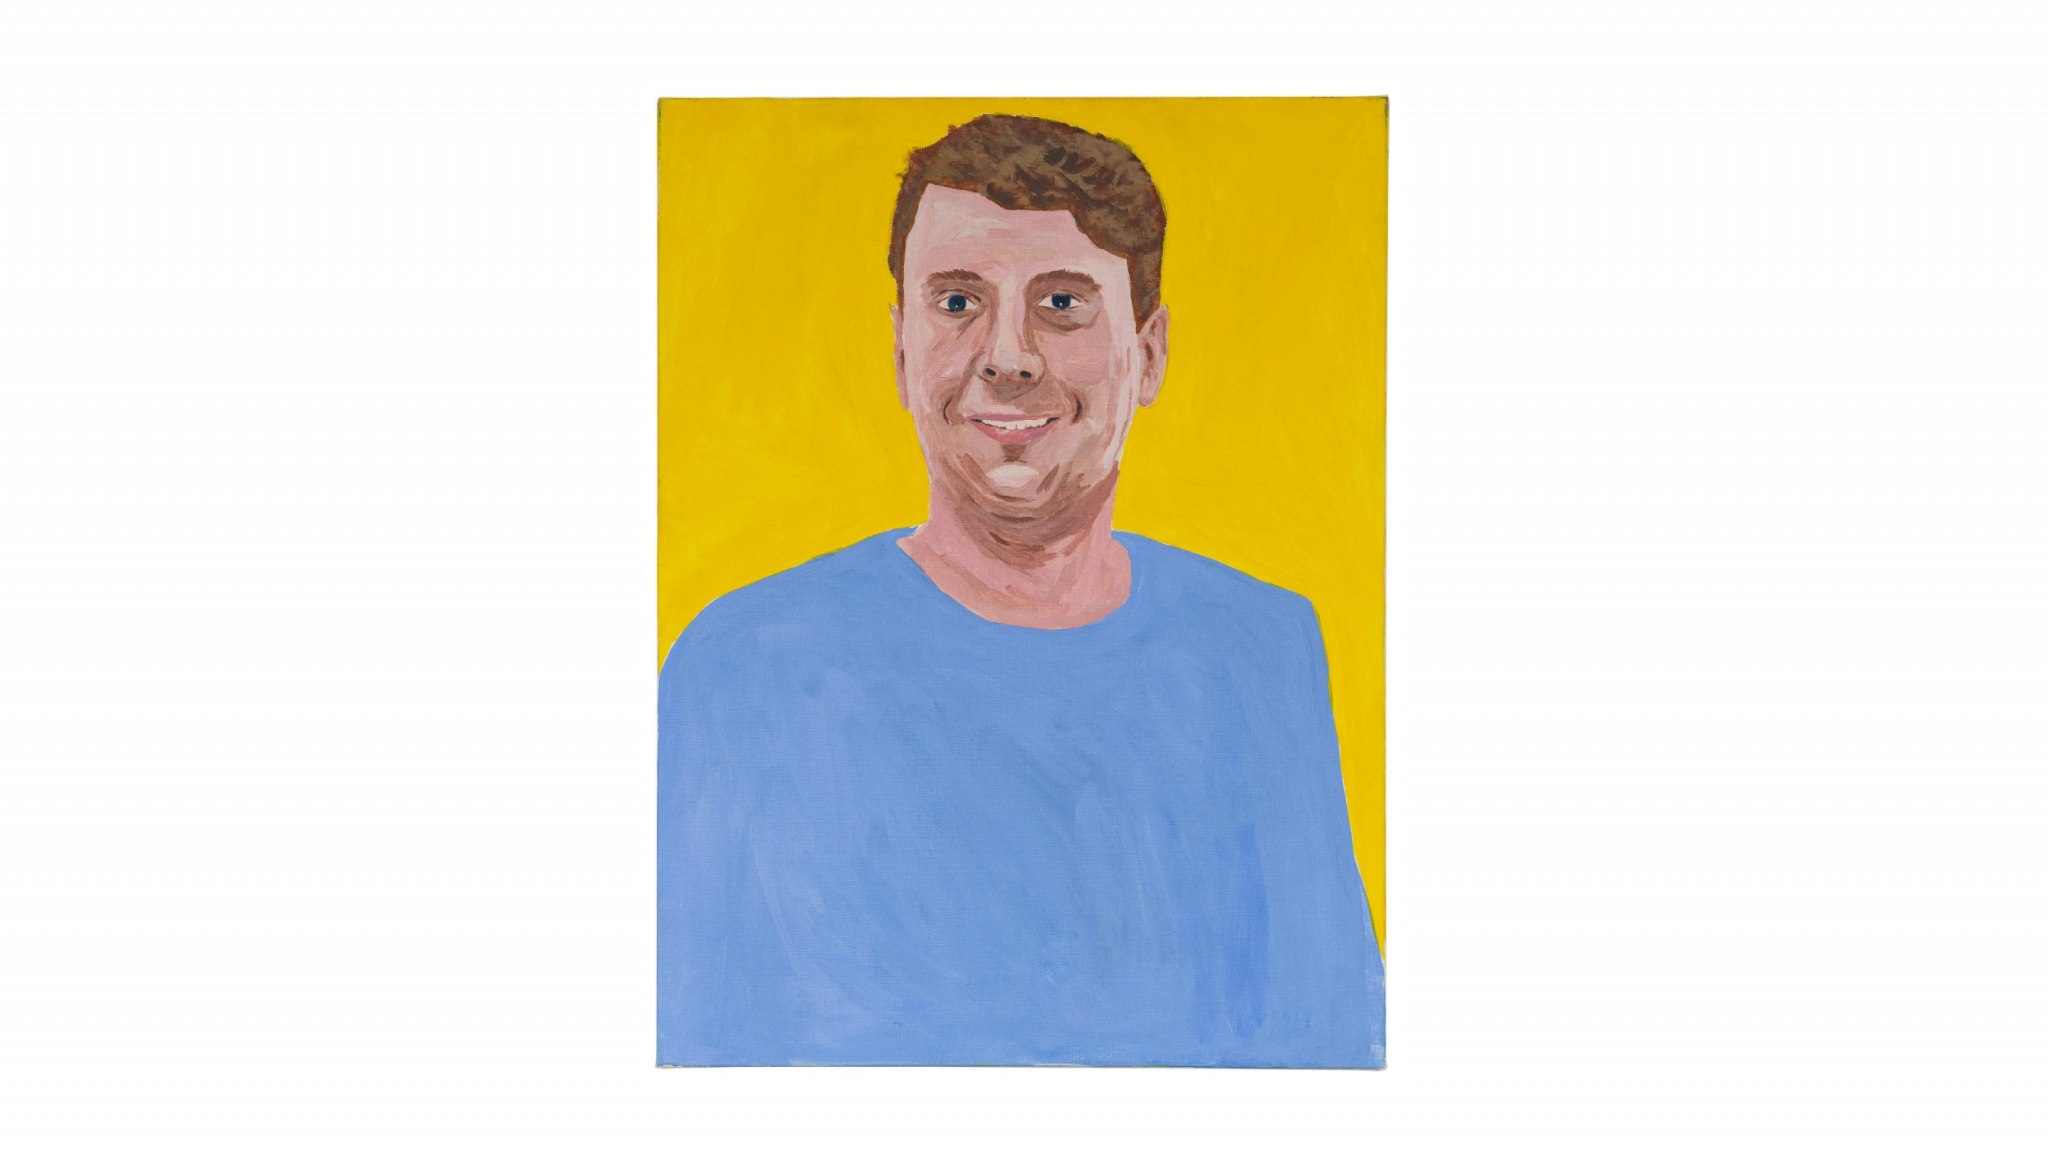 Self portrait of Joe Lycett—2018 Acrylic on canvas Appears in the opening credits of my Channel 4 series Joe Lycett's Got Your Back.